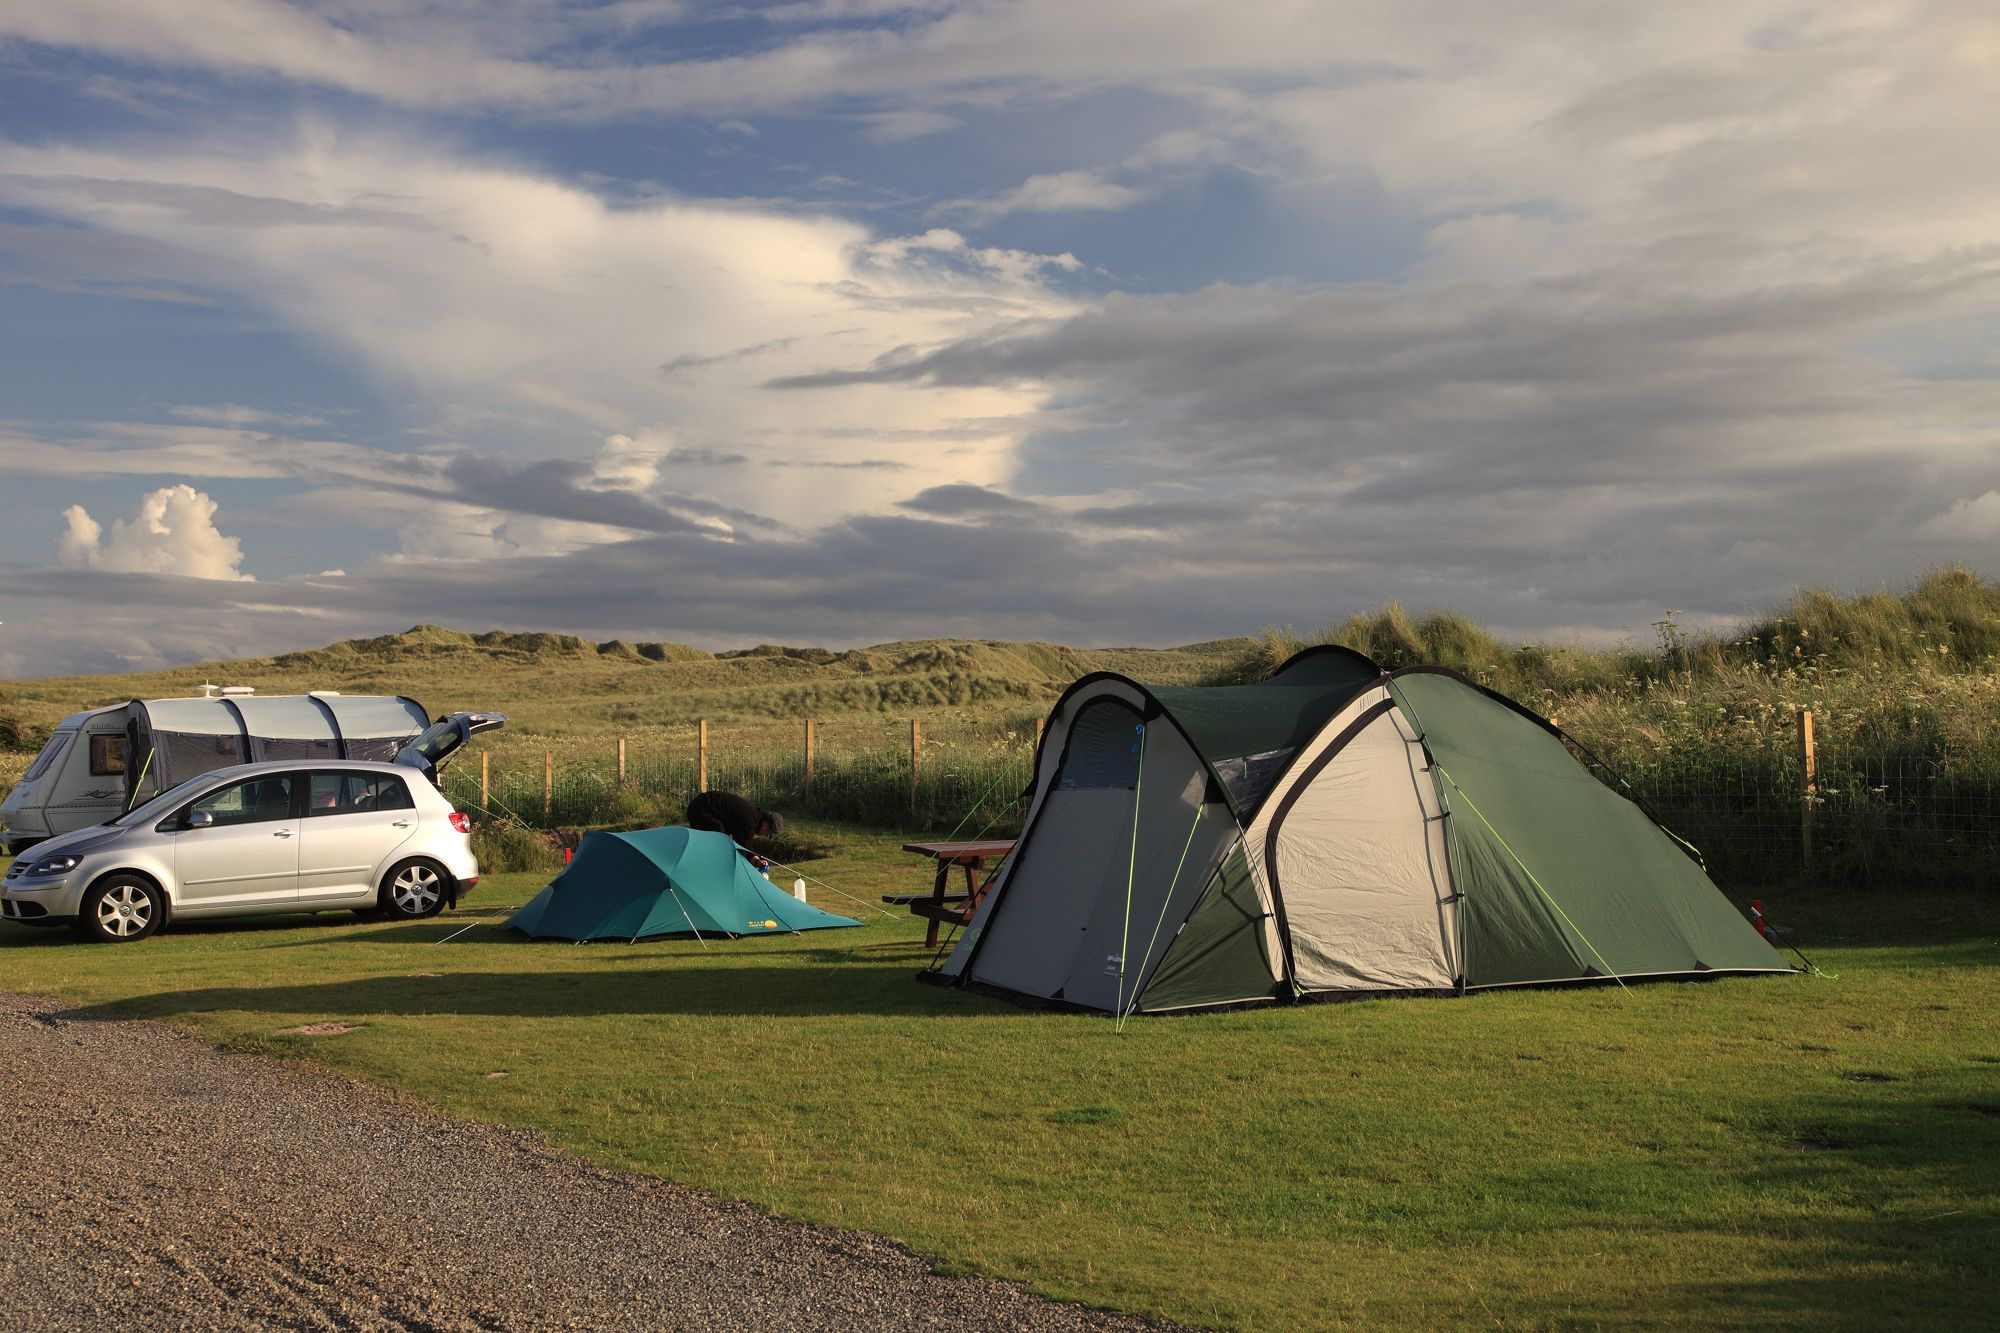 When you take it at face value, this site should be everything that Cool Camping is not: a council-owned site; run by the Caravan Club, with wardens in mint-green uniforms; and rules everywhere.